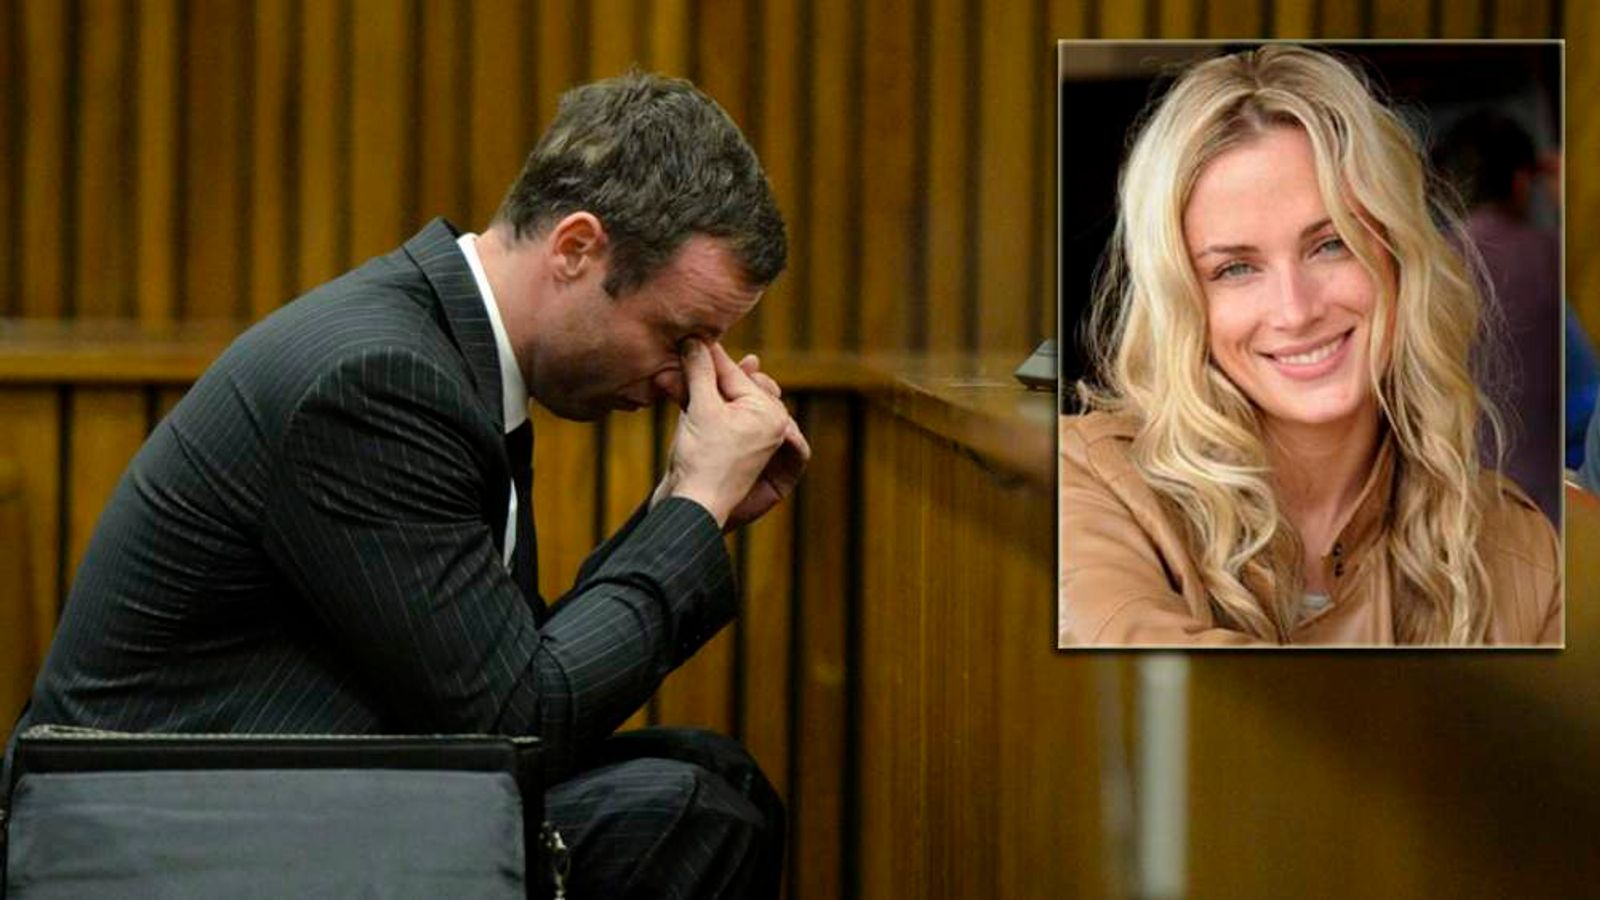 South African Olympic and Paralympic sprinter Pistorius sits in the dock during the closing defence arguments in the North Gauteng High Court in Pretoria